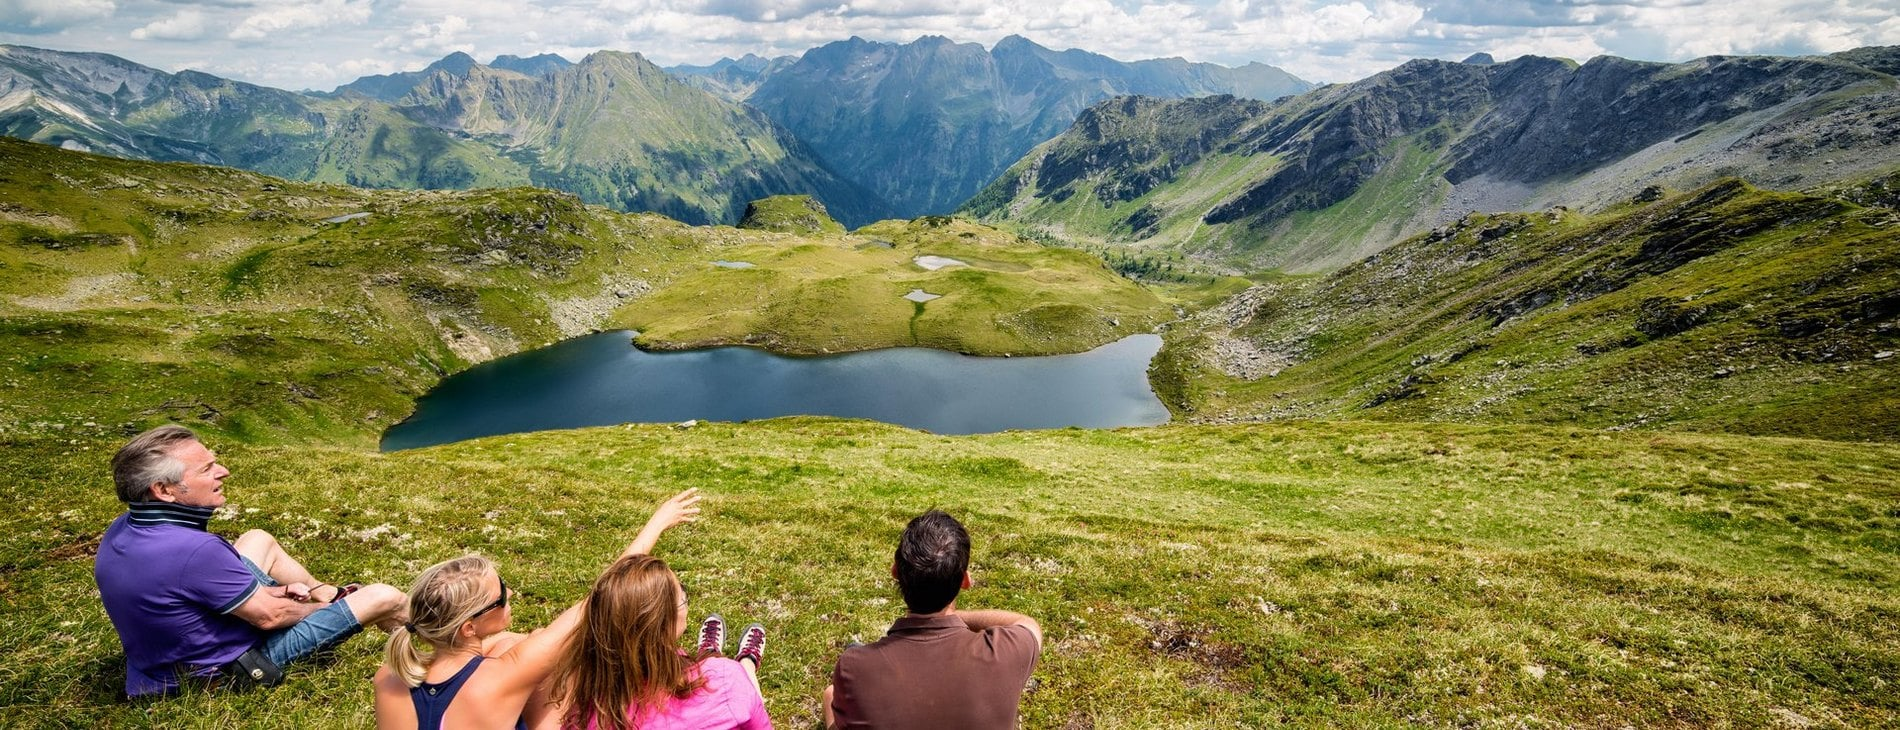 Enjoy Hiking in the State of Salzburgerland